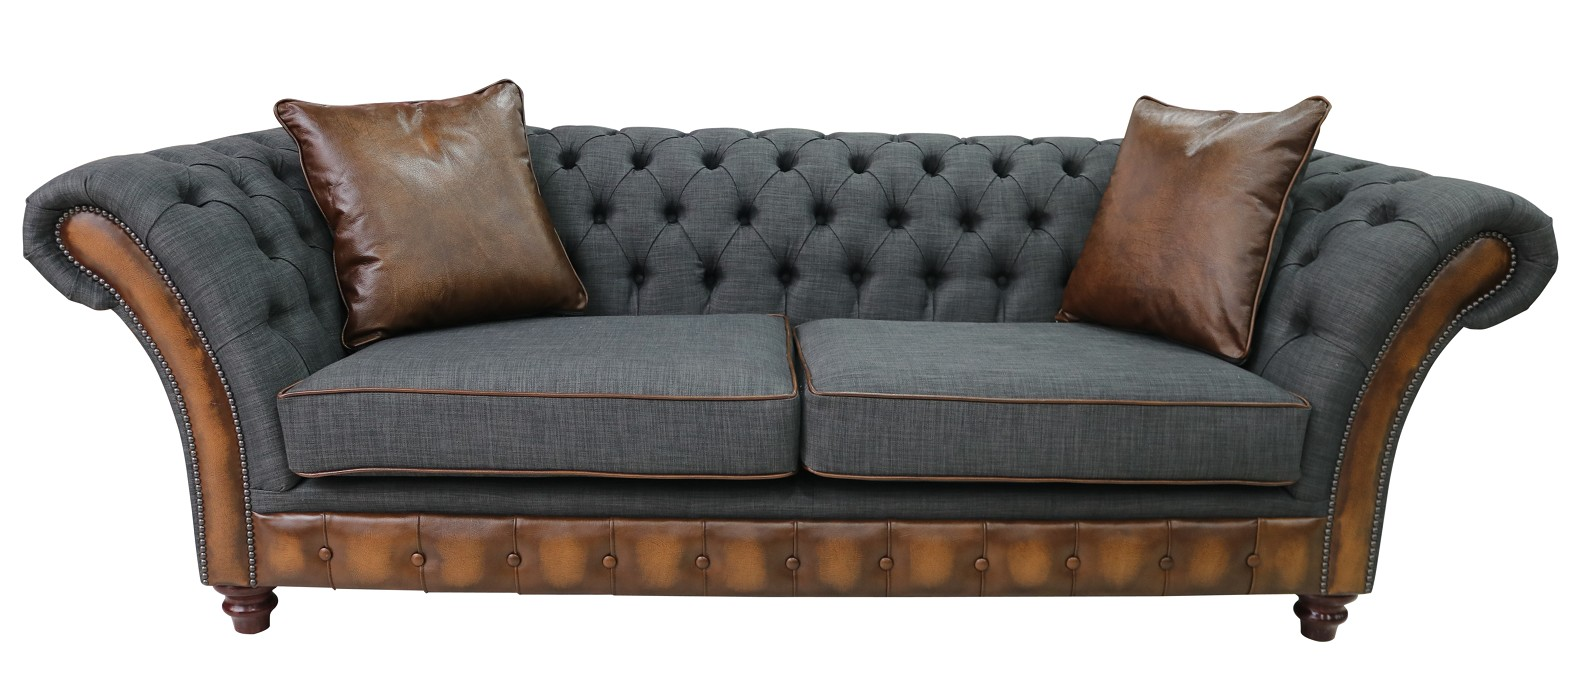 Chesterfield Jepson 3 Seater Sofa Settee Antique Tan Leather Marinello  Pewter